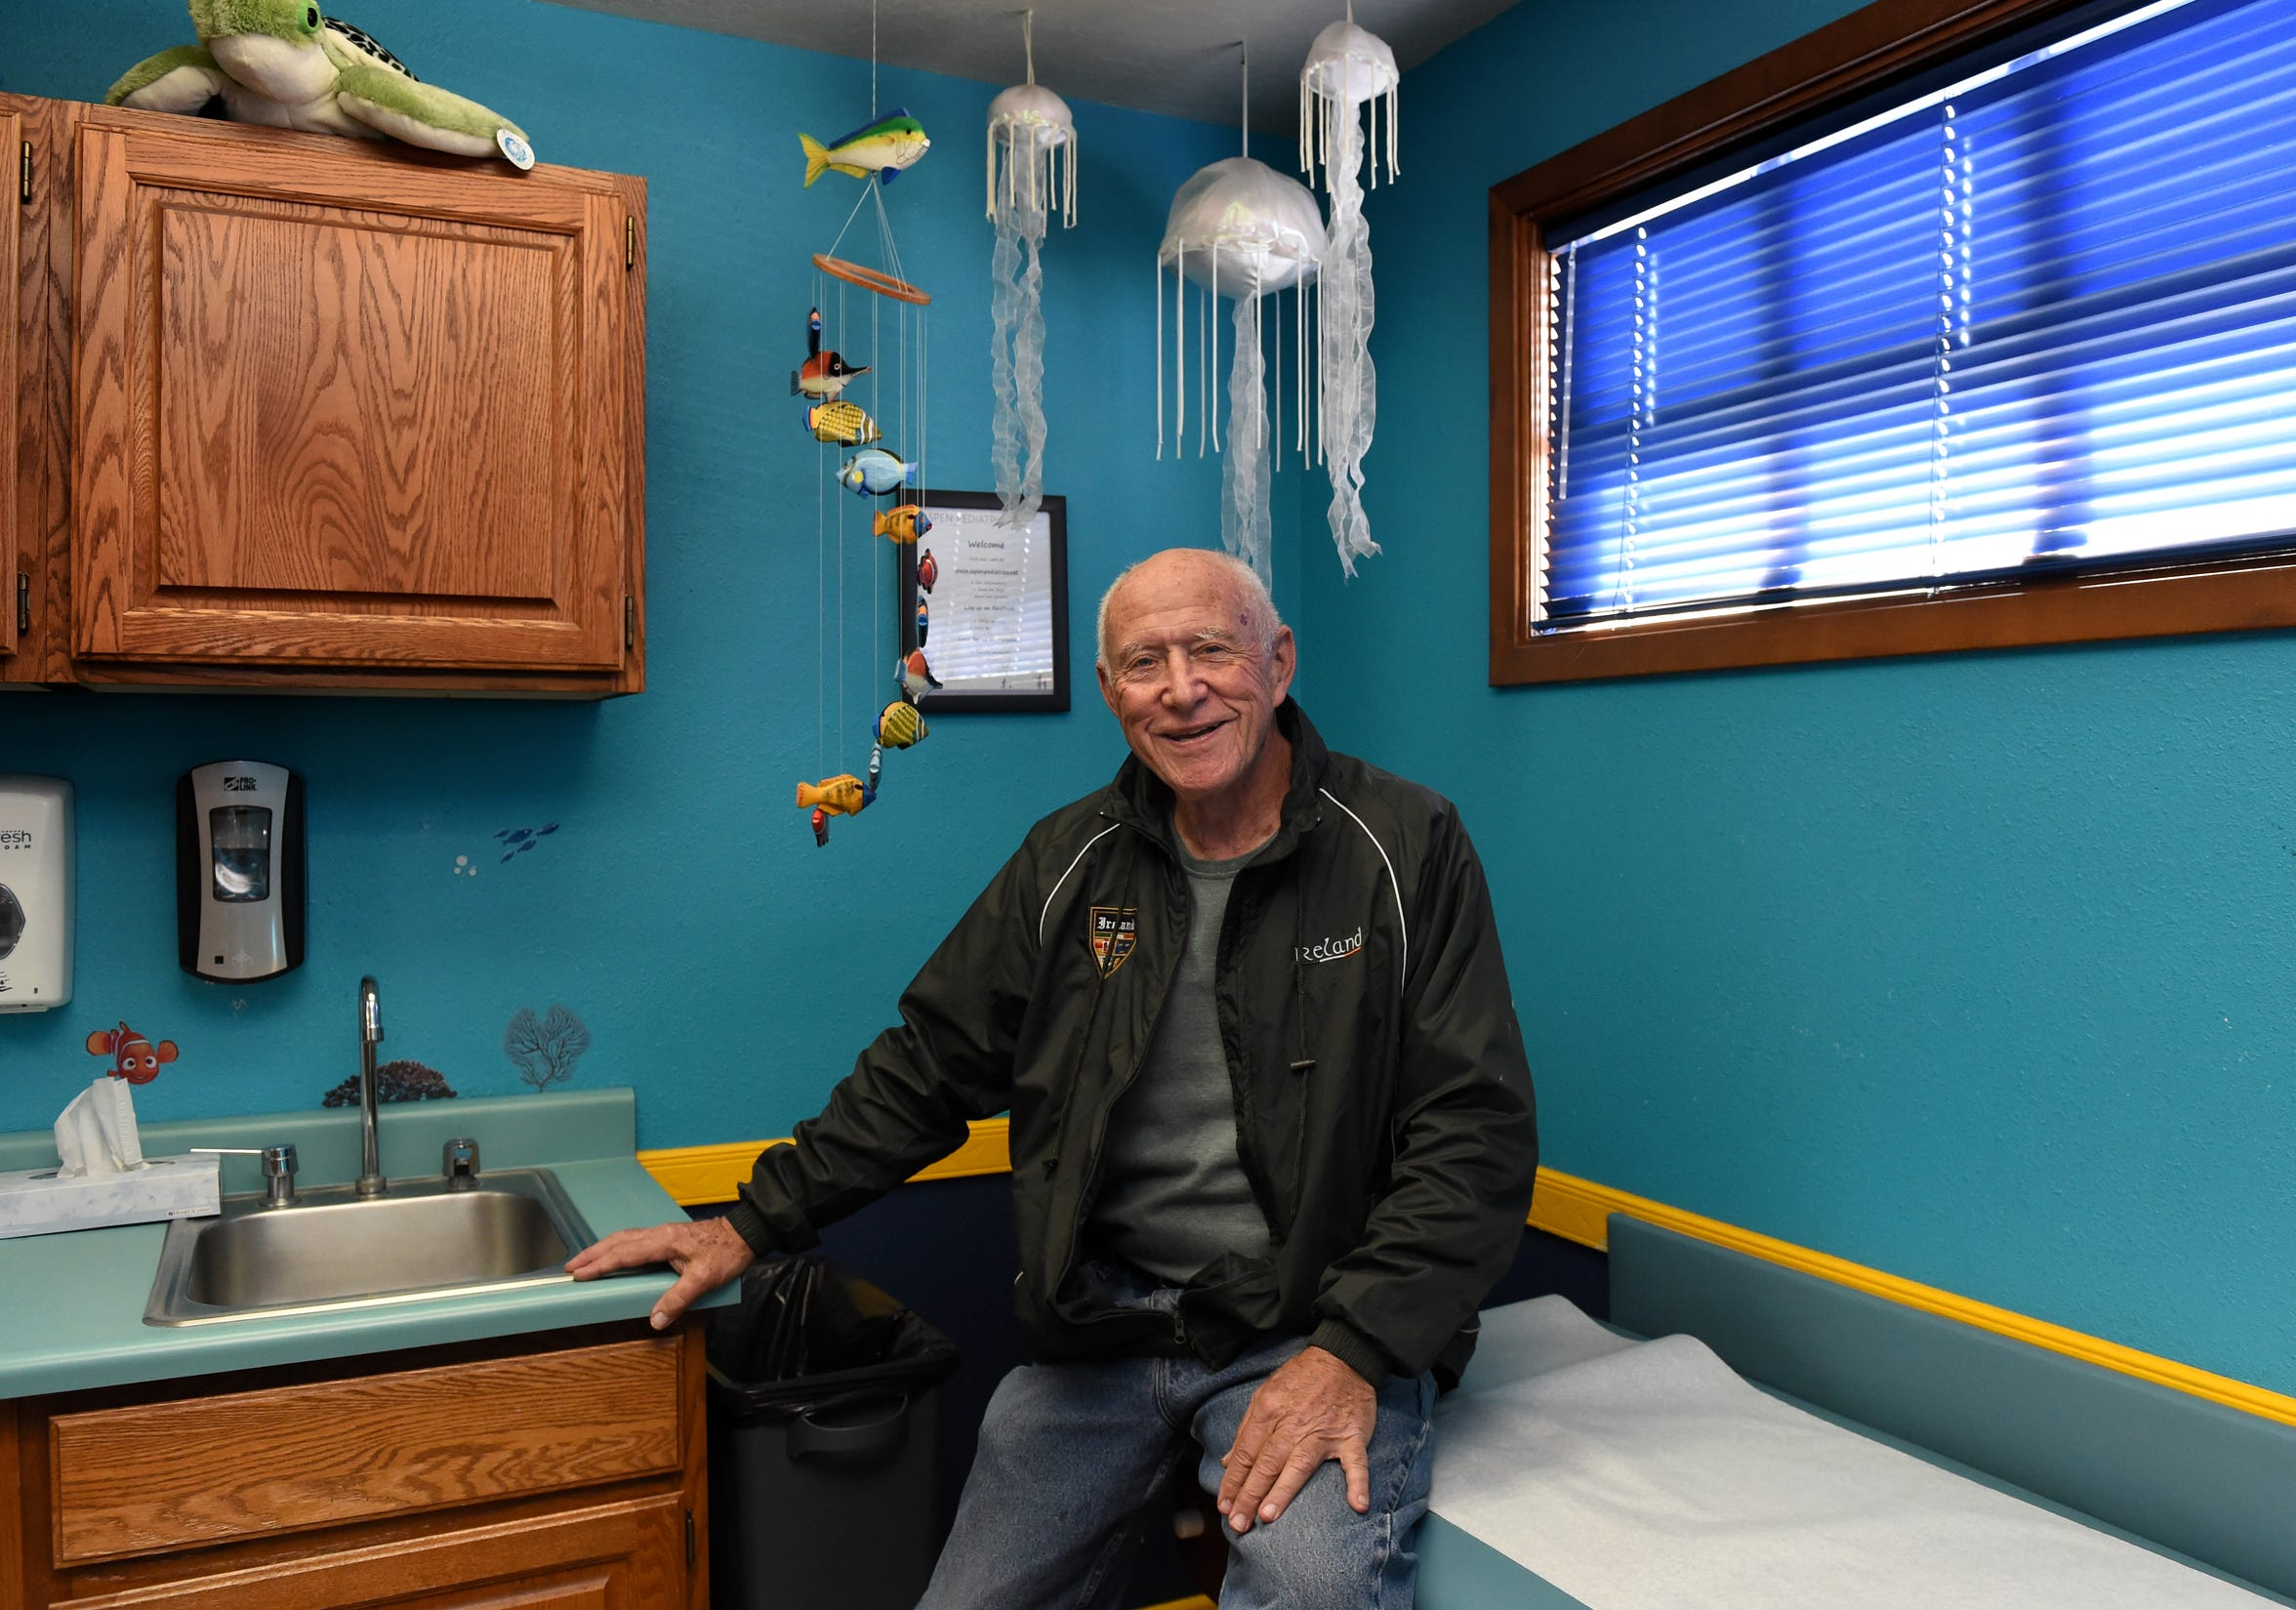 Dr. Patrick Colletti sits in one of the exam rooms.  Dr. Colletti is retiring after 50 years of pediatric practice in Reno.